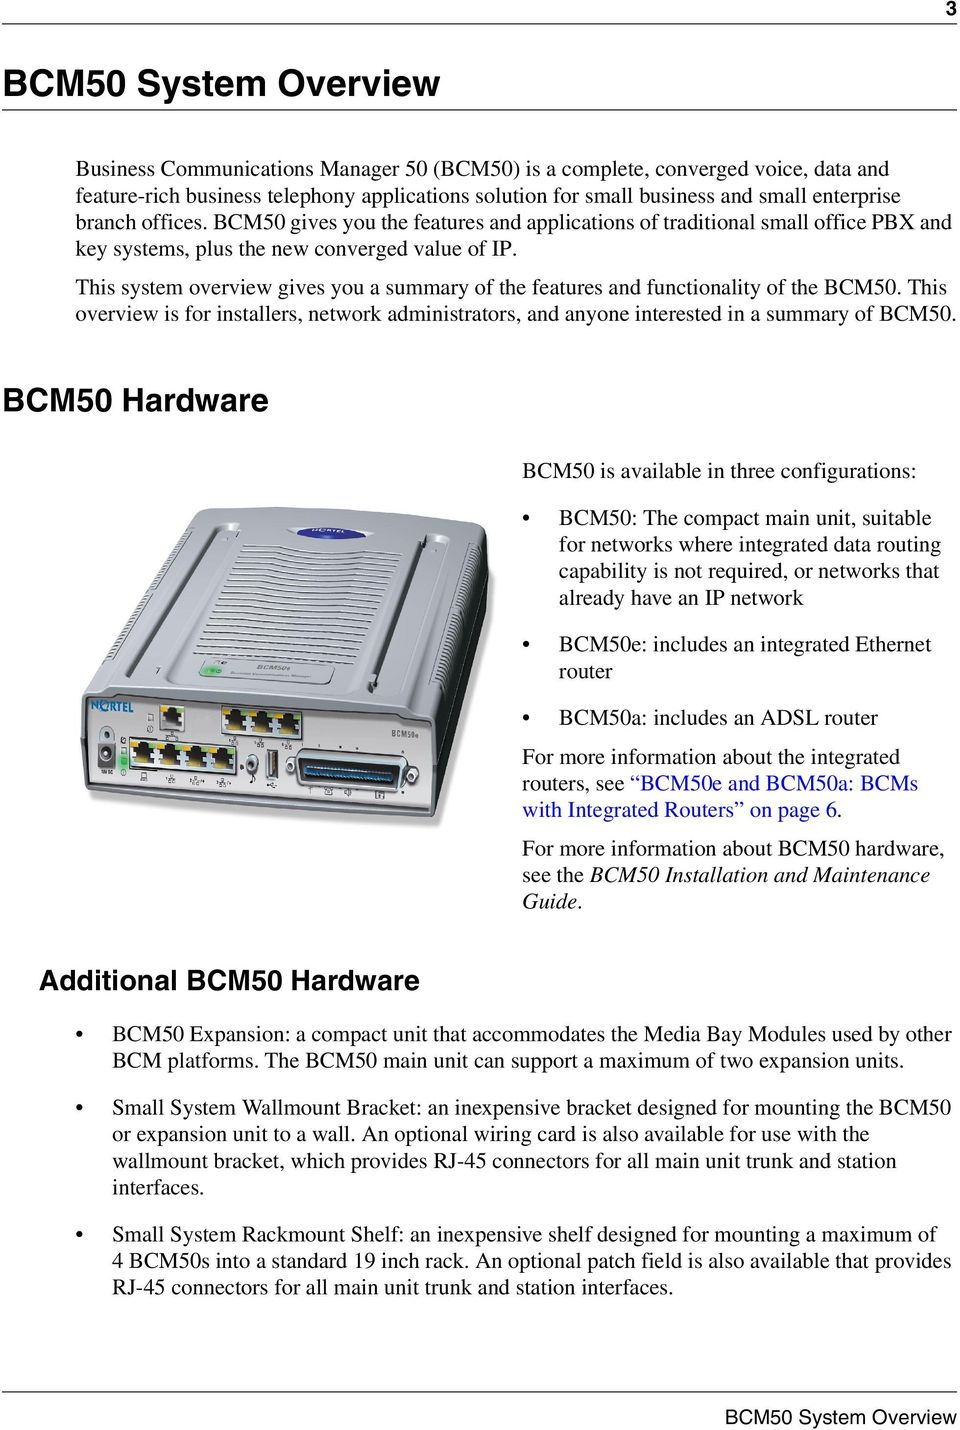 This system overview gives you a summary of the features and functionality of the BCM50. This overview is for installers, network administrators, and anyone interested in a summary of BCM50.